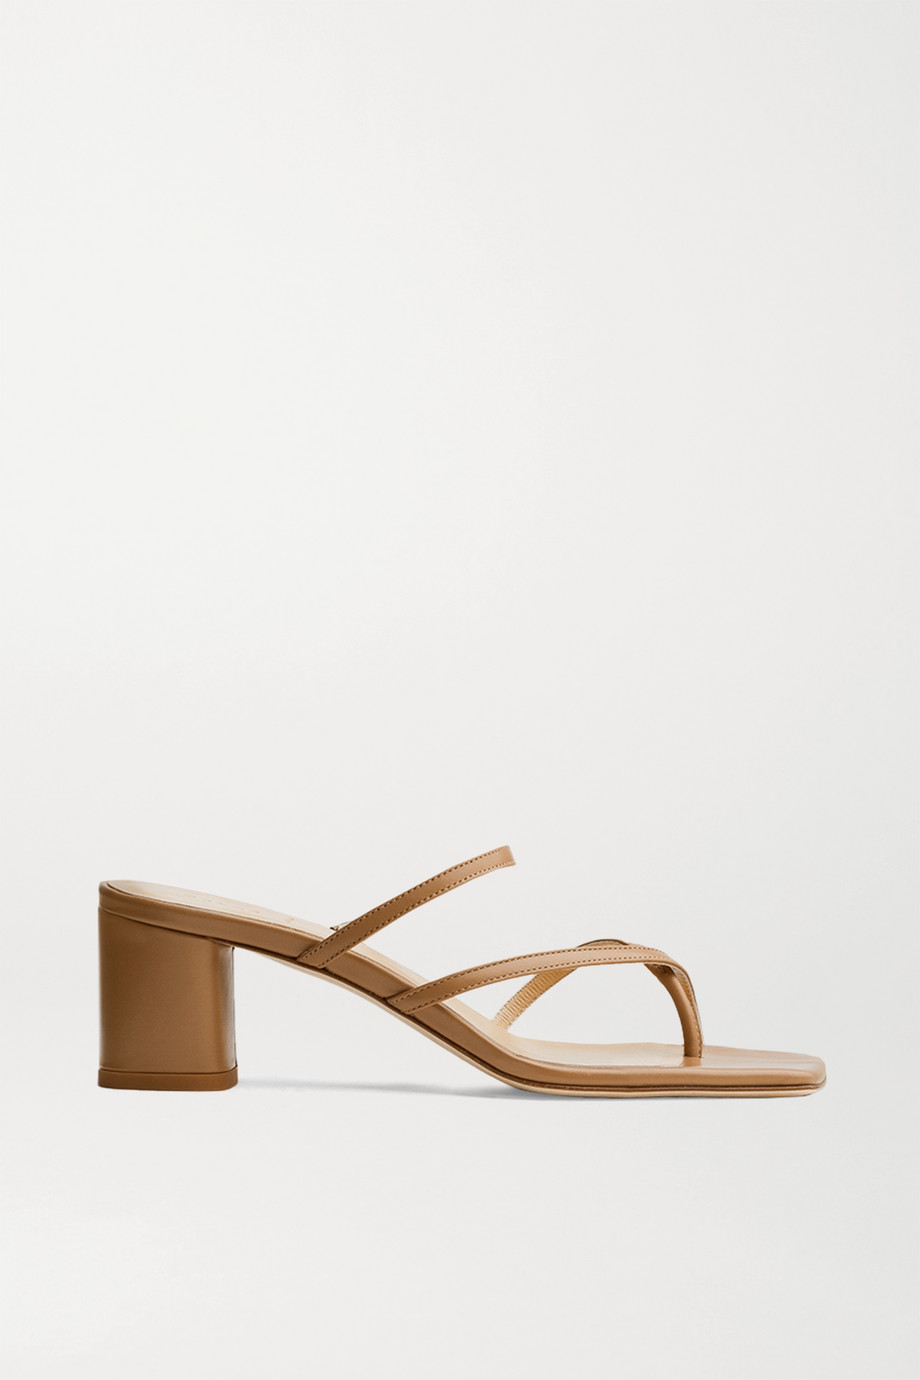 aeydē Larissa leather mules